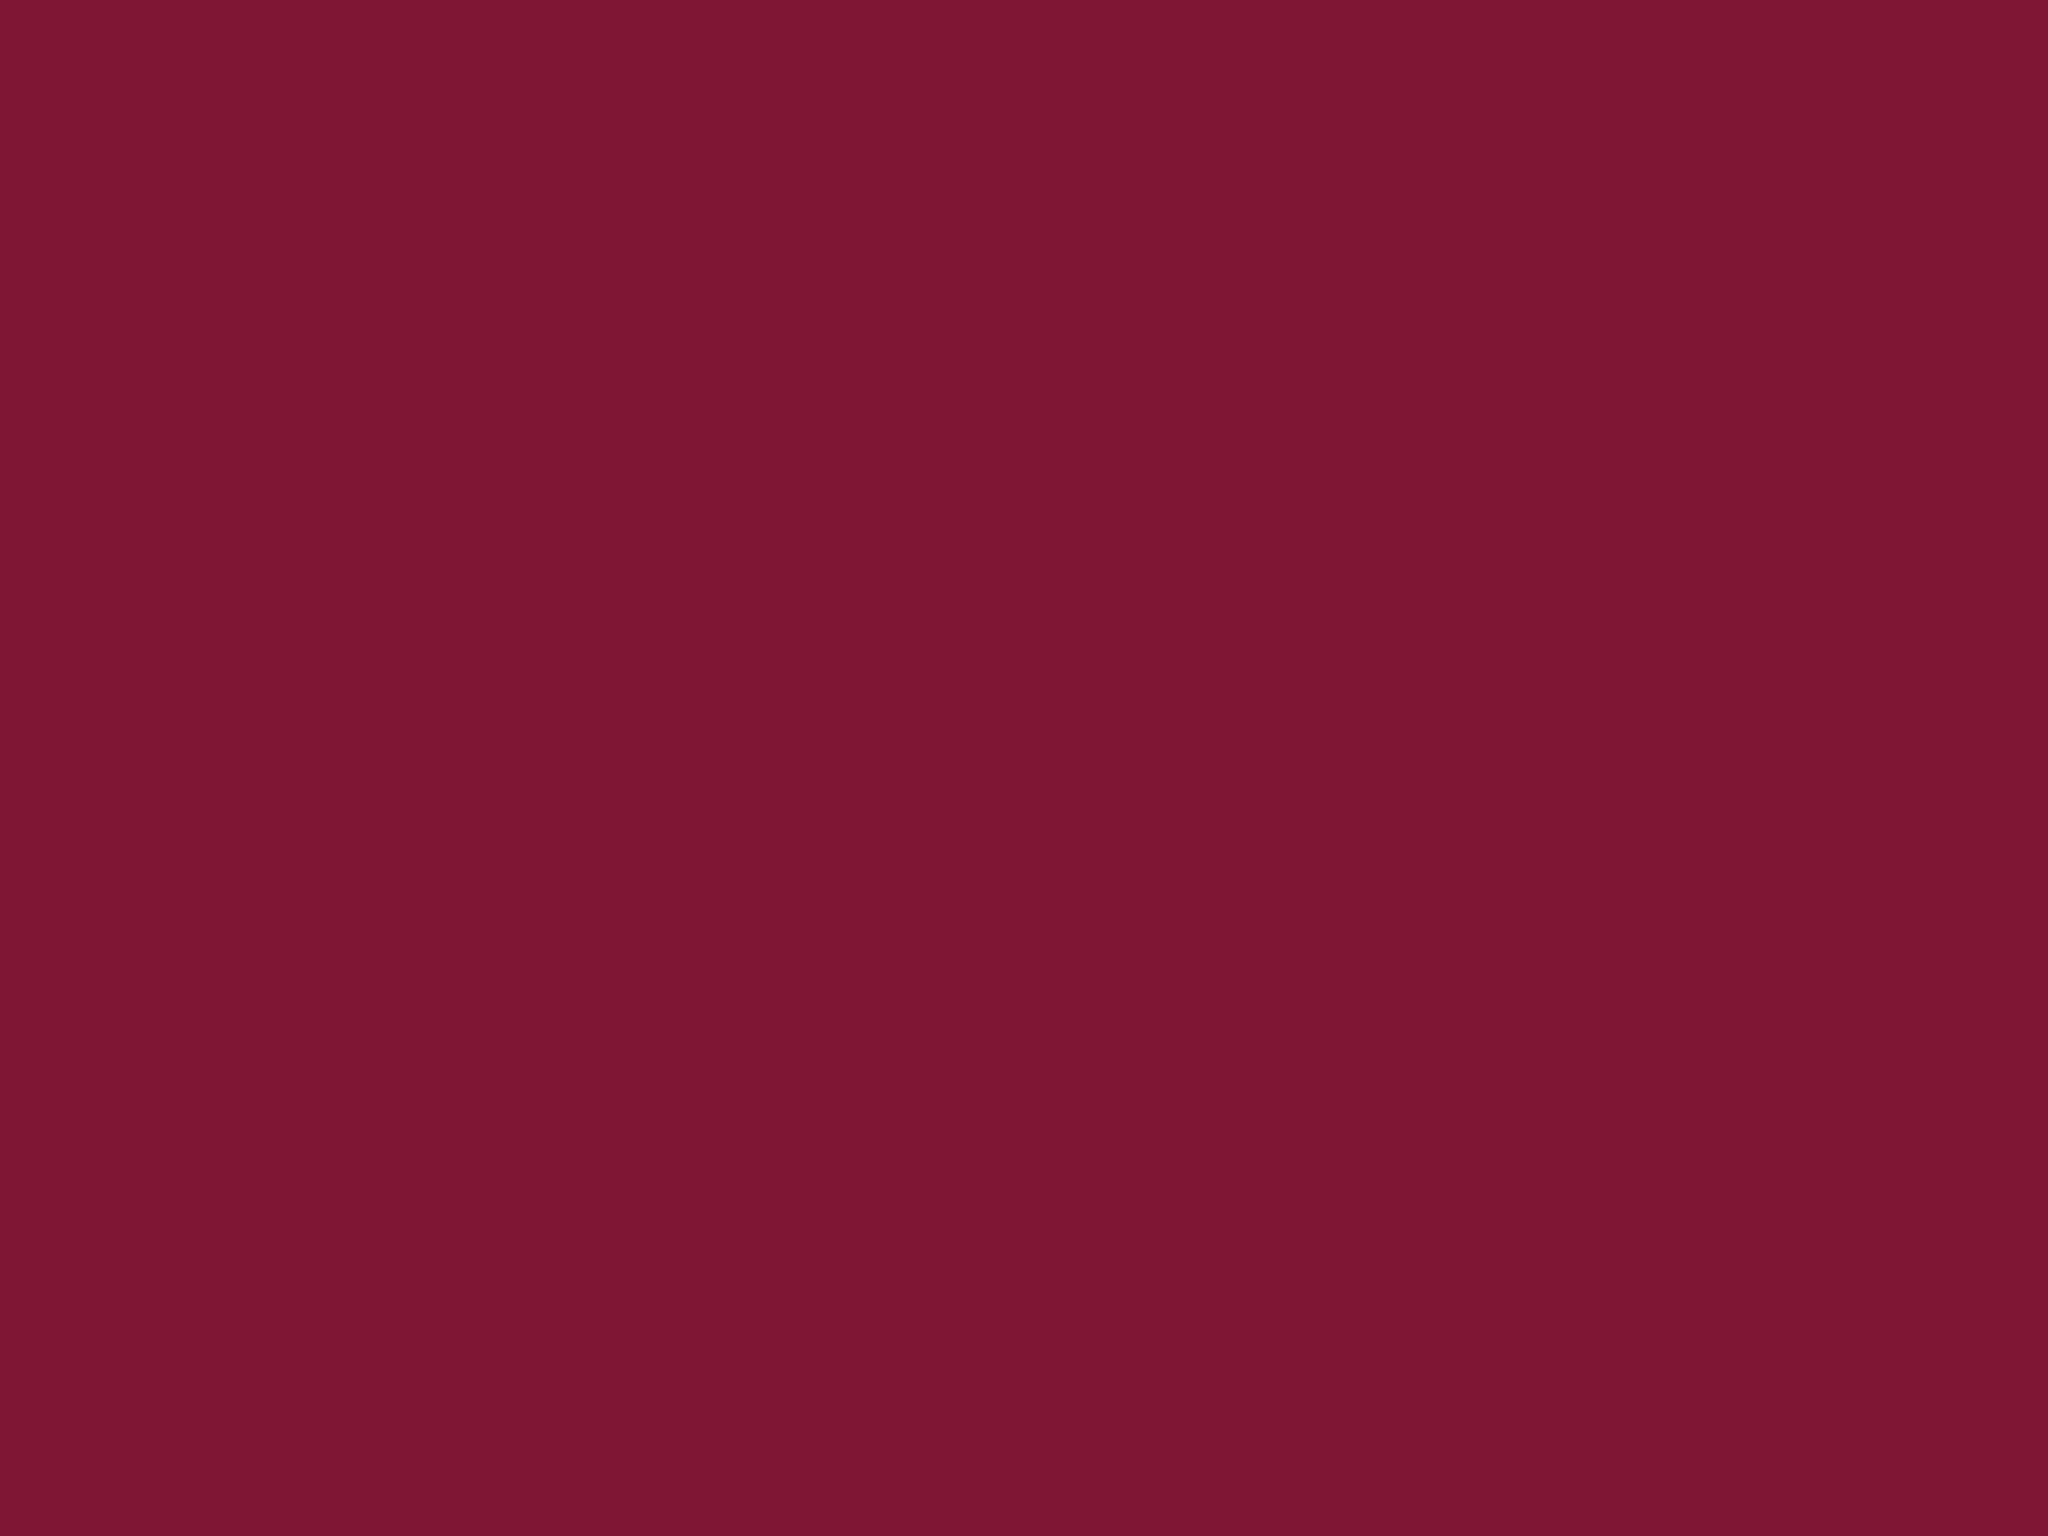 2048x1536 Claret Solid Color Background